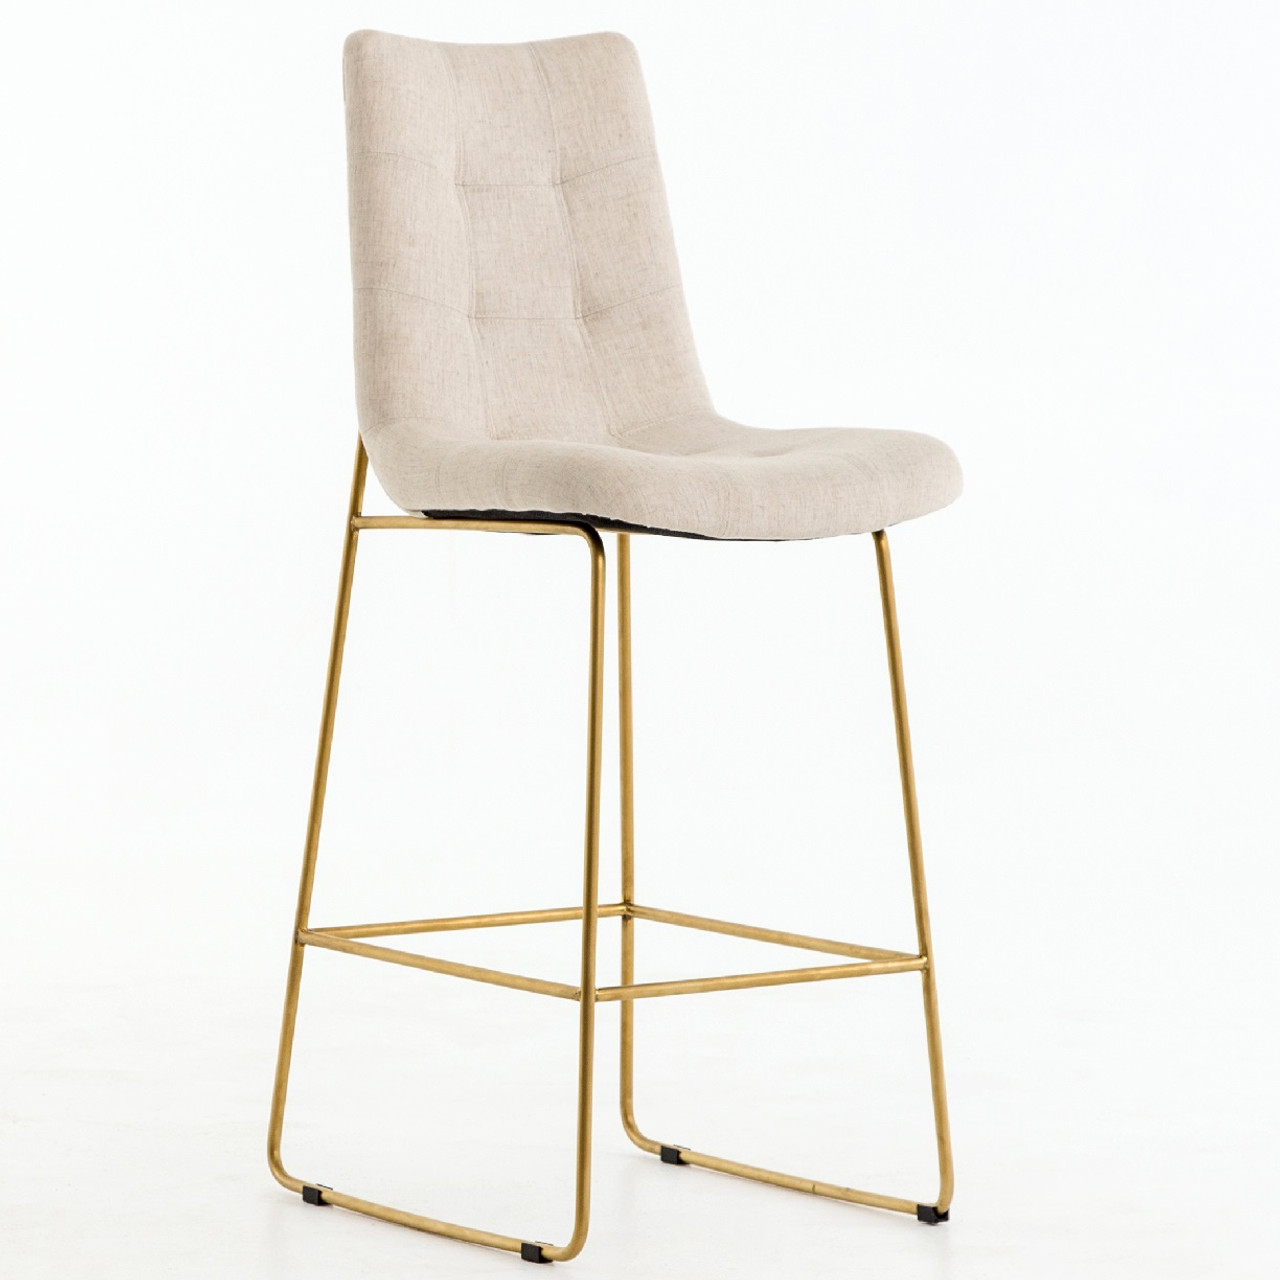 Stupendous Camile Gold Iron Leg Bar Stool Savile Flax Caraccident5 Cool Chair Designs And Ideas Caraccident5Info